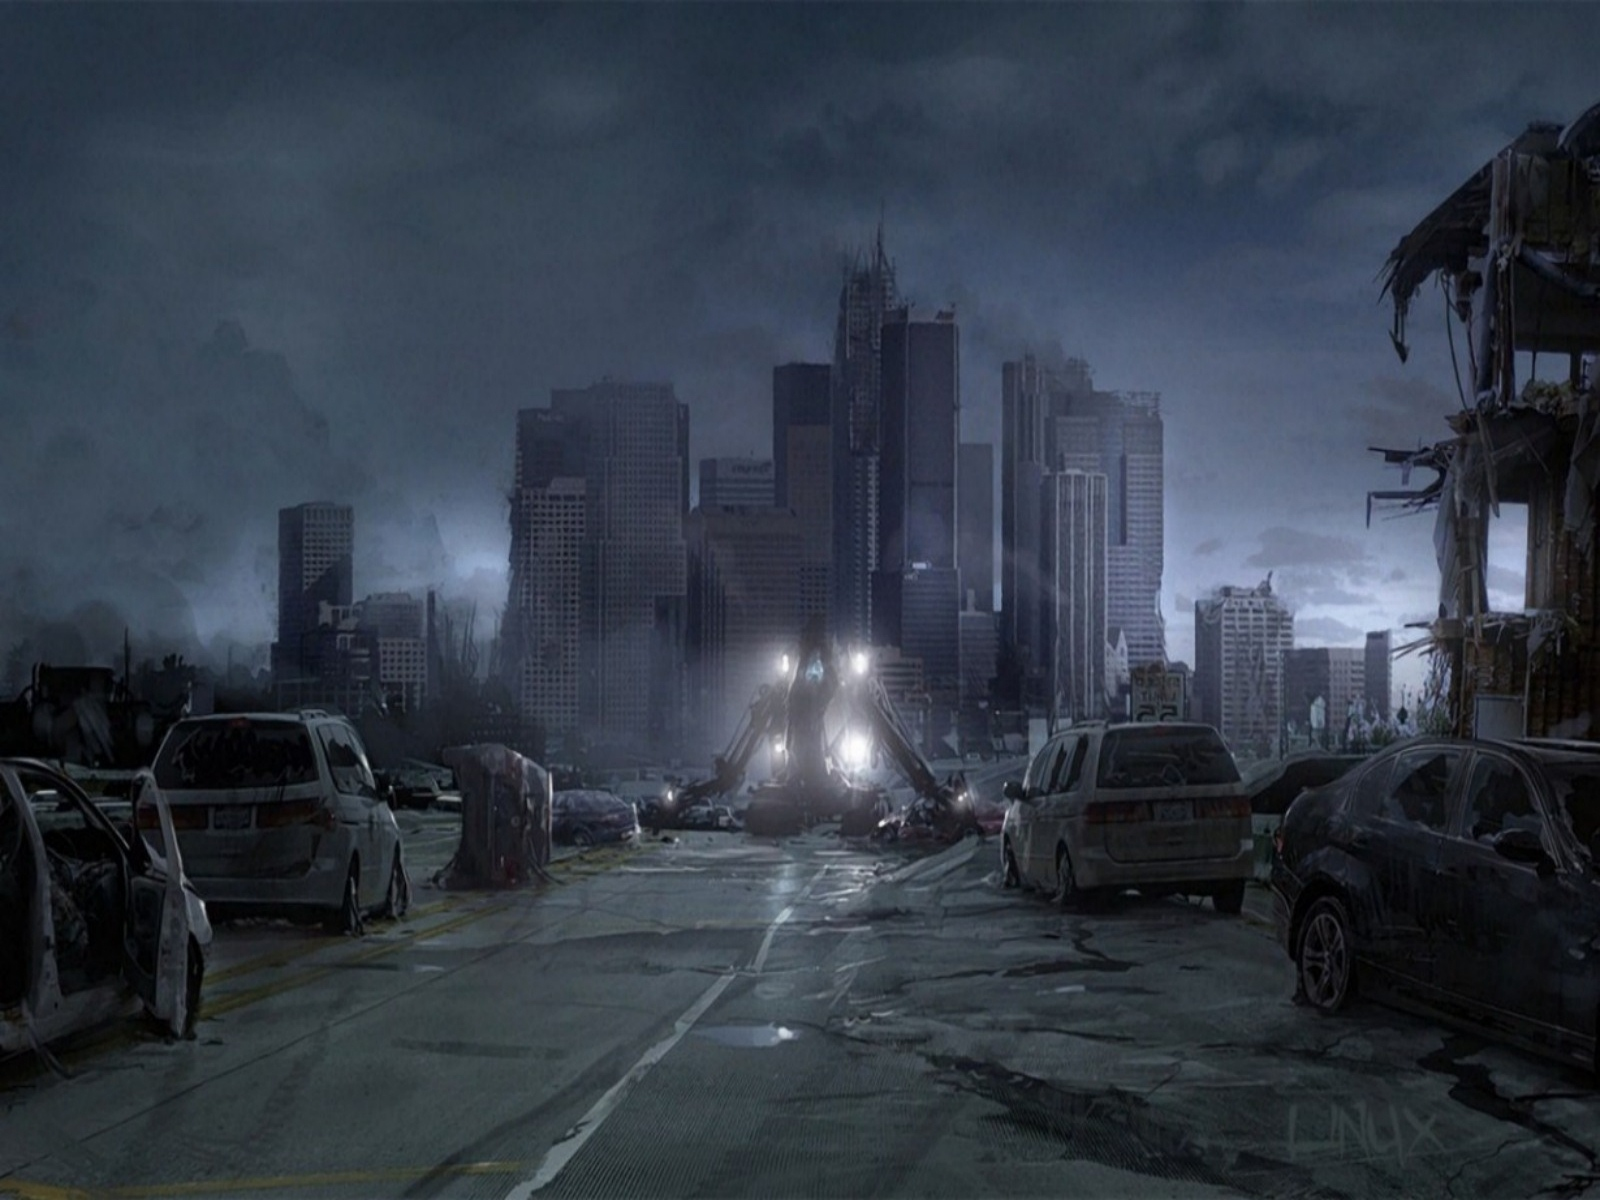 Dark Alley Hd Pictures to Pin on Pinterest - PinsDaddy